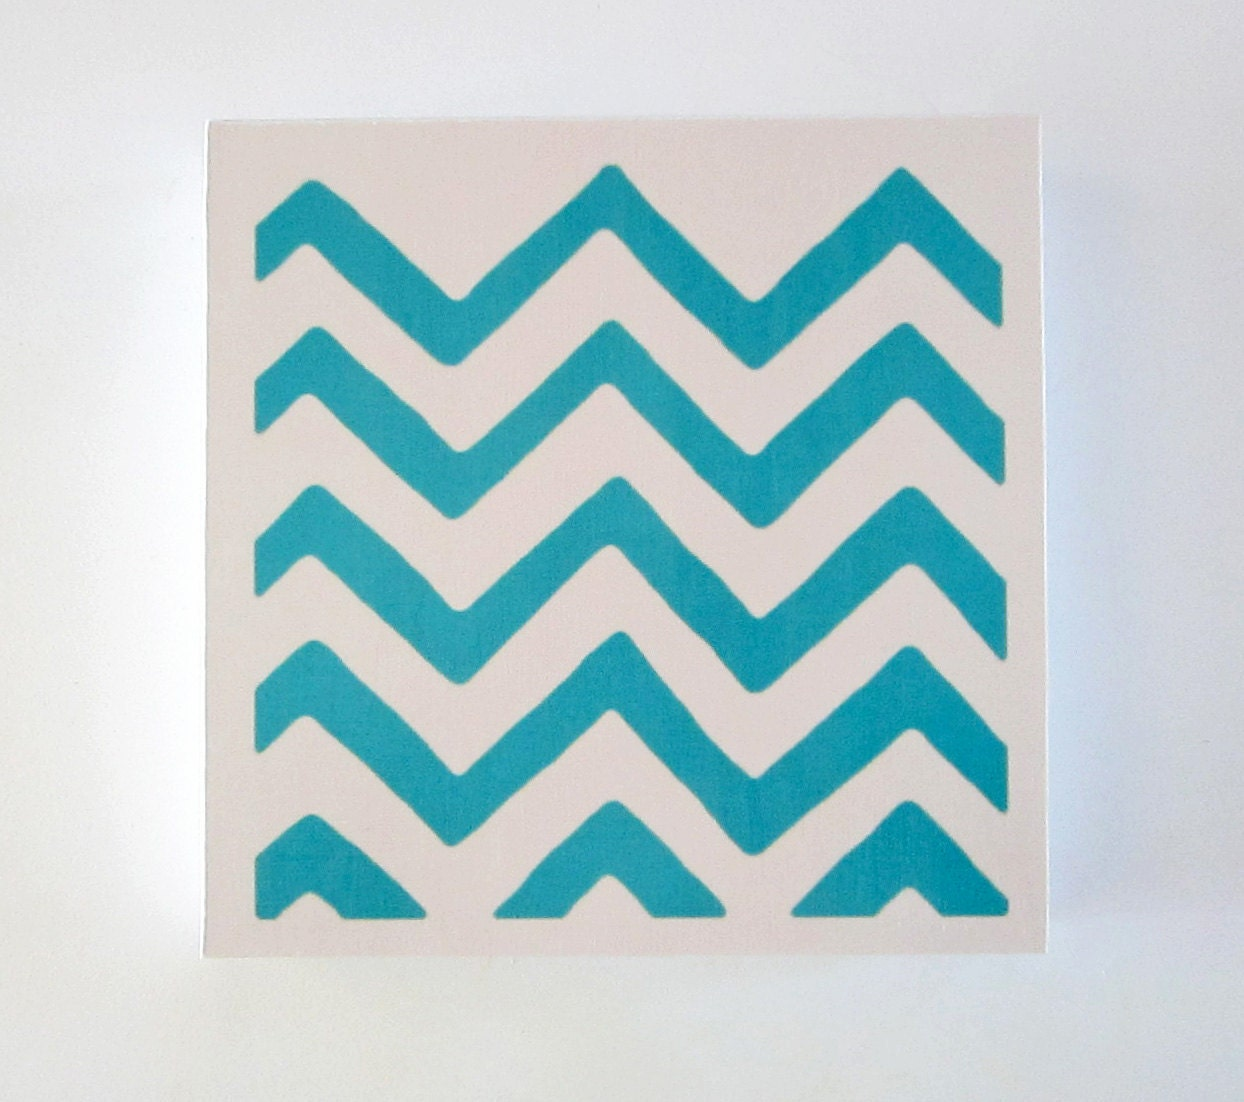 Chevron 4 Blue Turquoise Aqua 8x8 art block on wood block geometric pattern modern redtilestudio